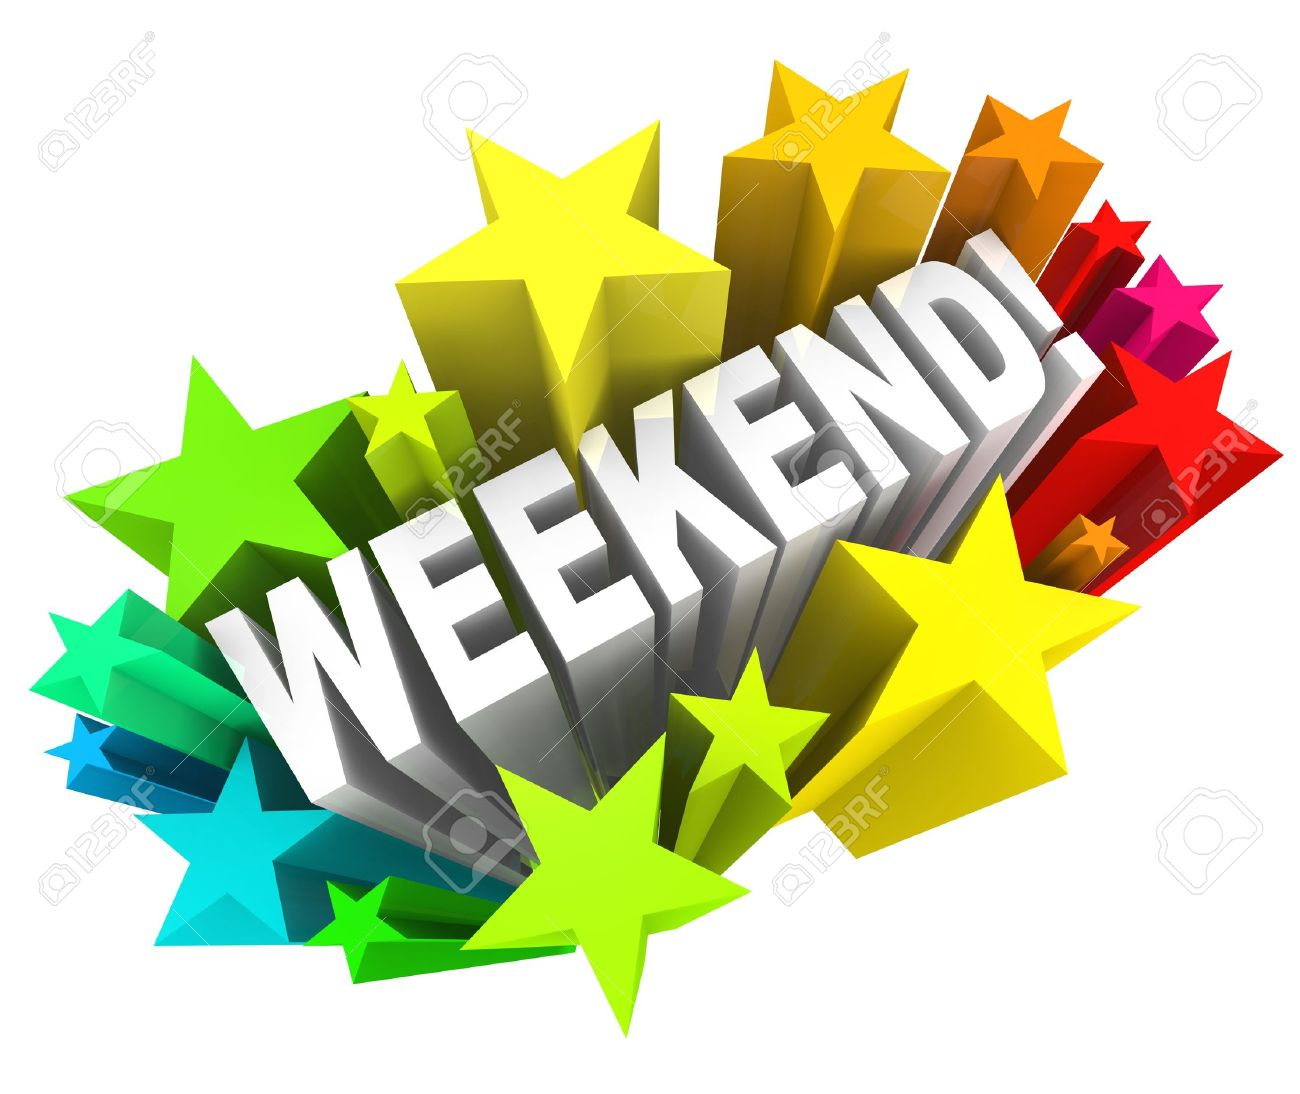 Image result for The word weekend